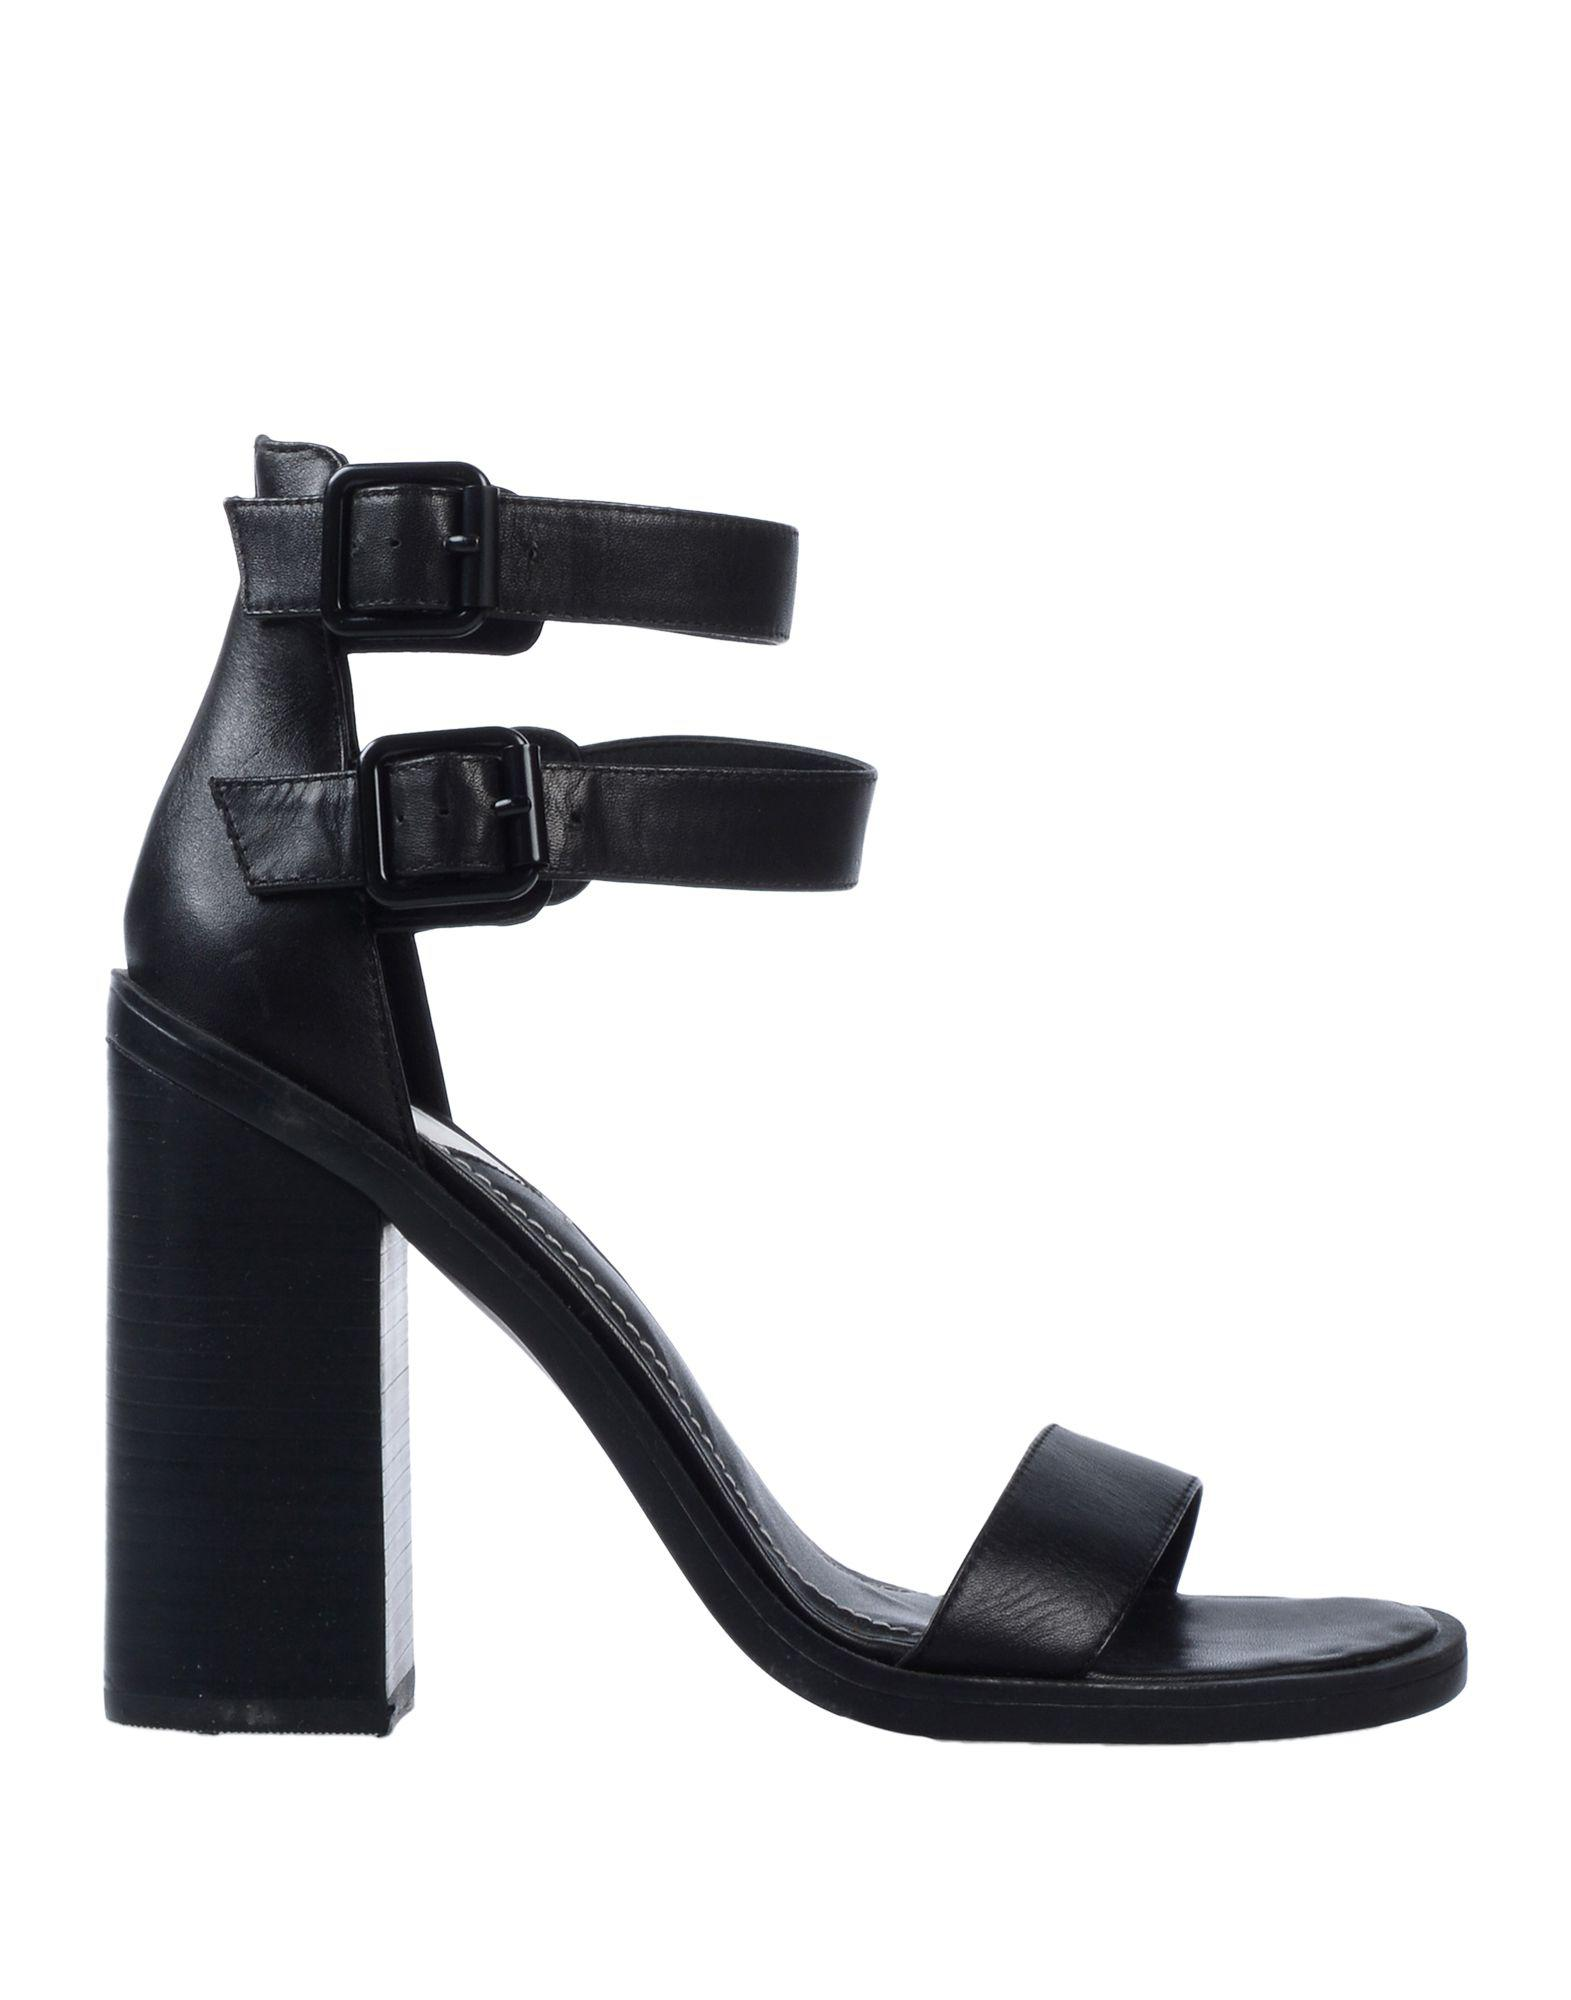 c23ea06c8fcd Lyst - Windsor Smith Sandals in Black